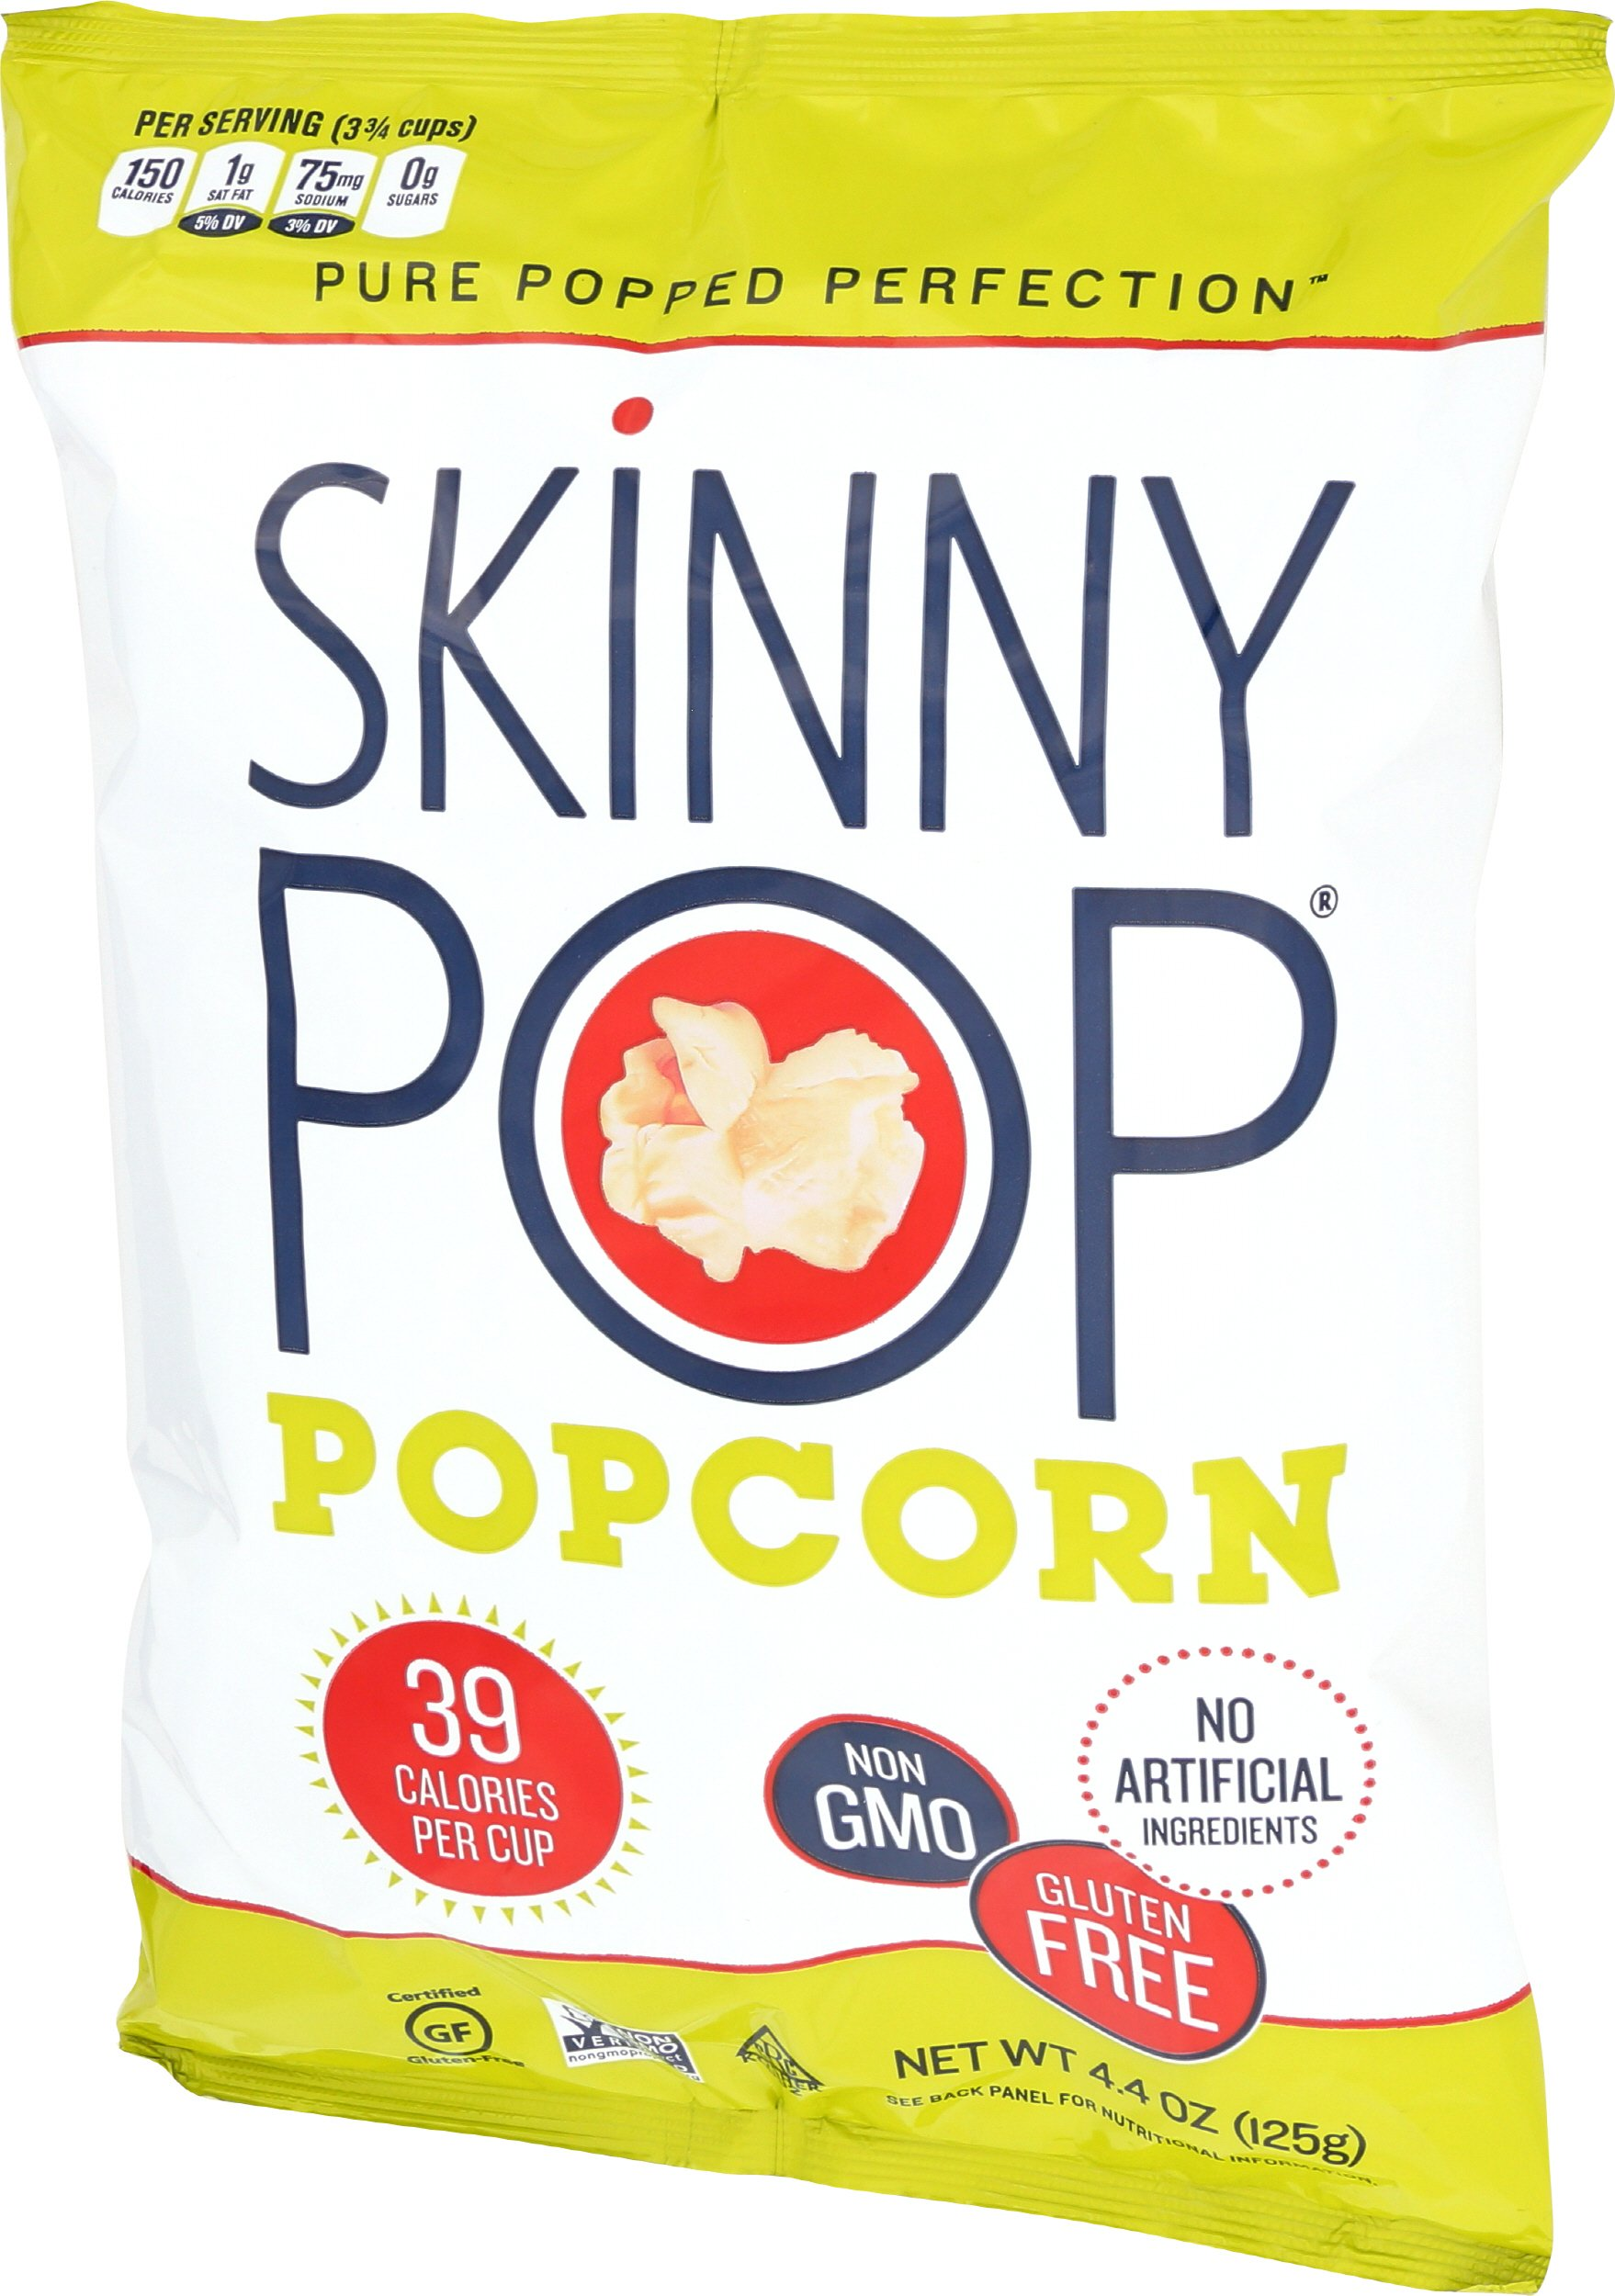 SKINNYPOP Original Popped Popcorn, Individual Bags, Gluten Free Popcorn, Non-GMO, No Artificial Ingredients, A Delicious Source of Fiber, 4.4 Ounce (Pack of 12) by SkinnyPop (Image #8)